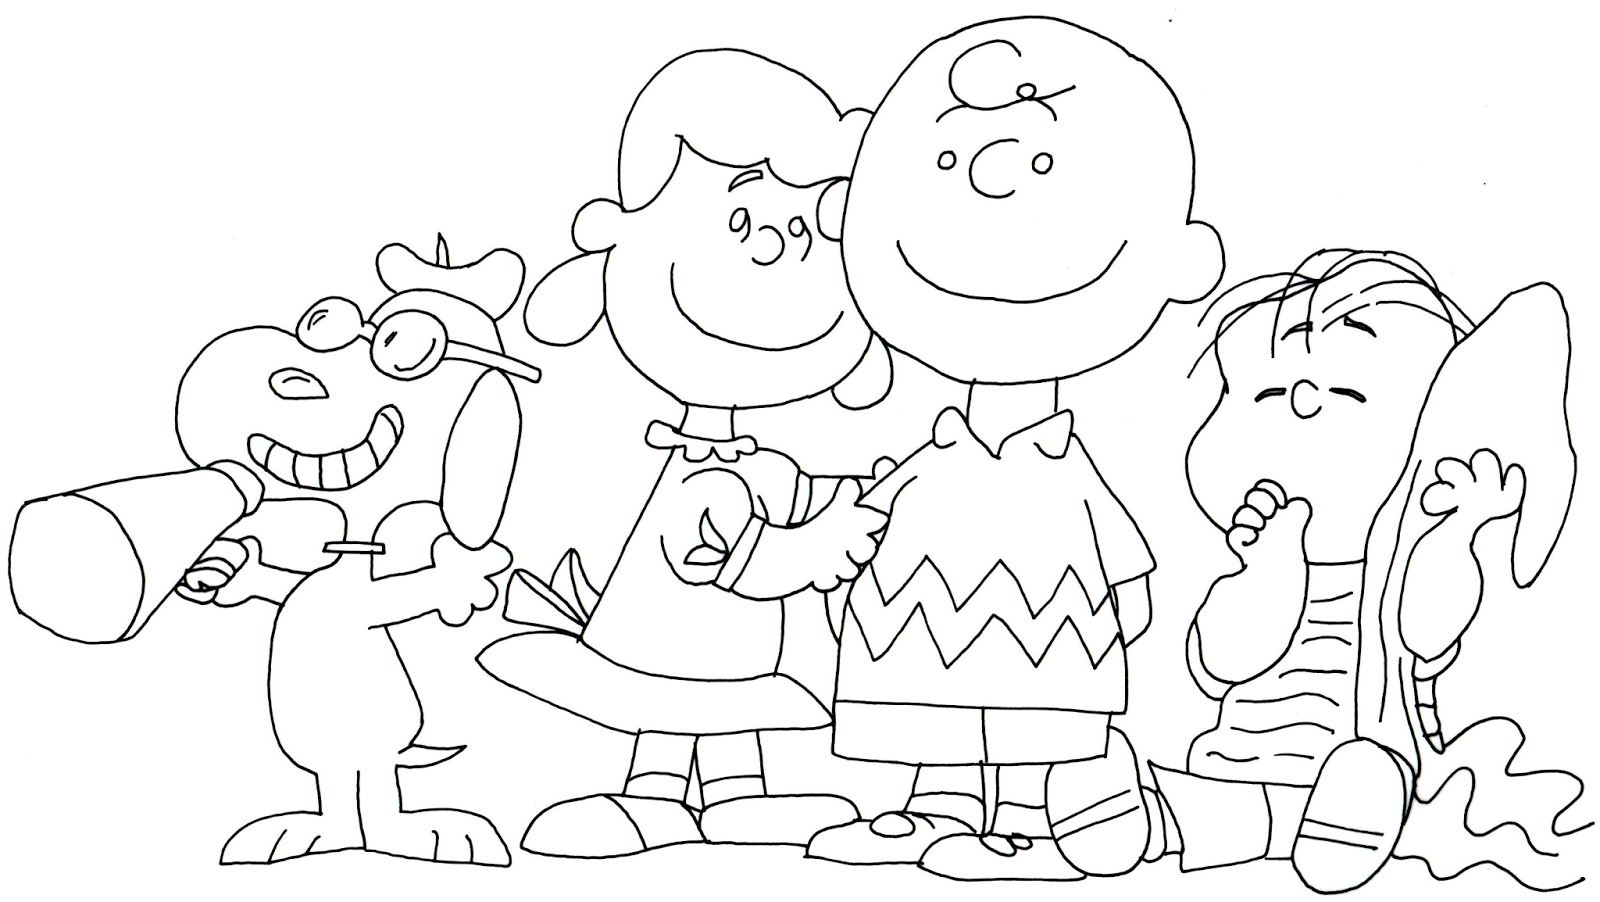 1600x902 Free Charlie Brown Snoopy And Peanuts Coloring Pages Snoopy Lucy